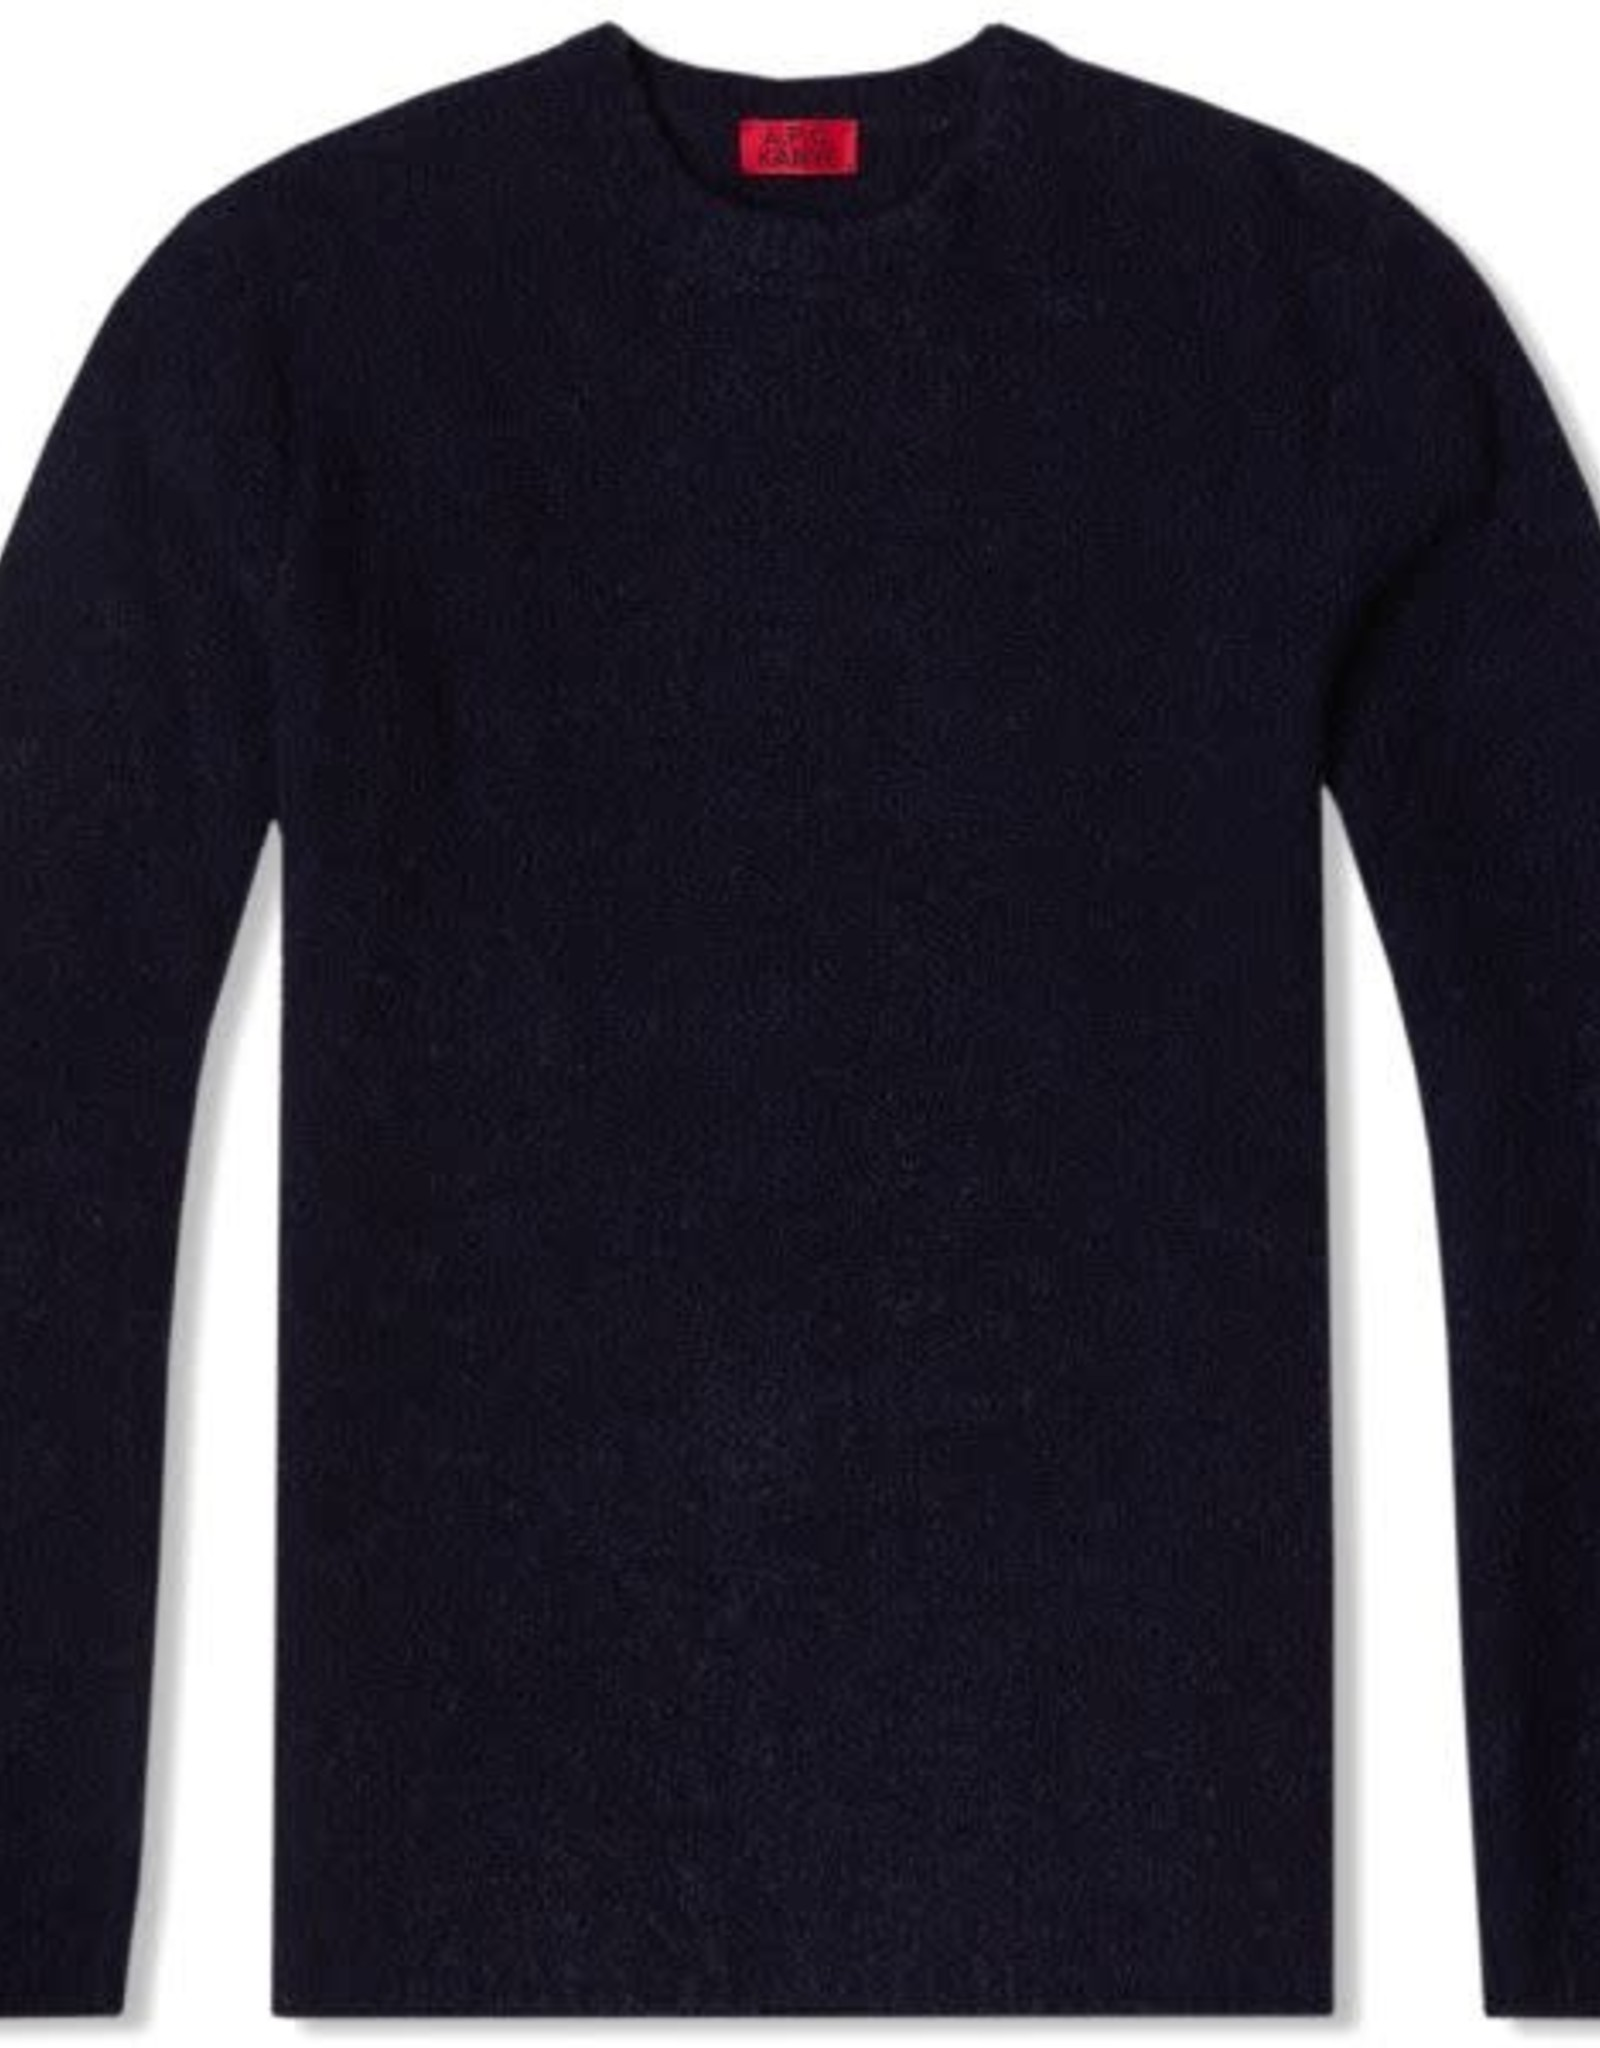 A.P.C KANYE AIRPORT SWEATER - MEDIUM WORN